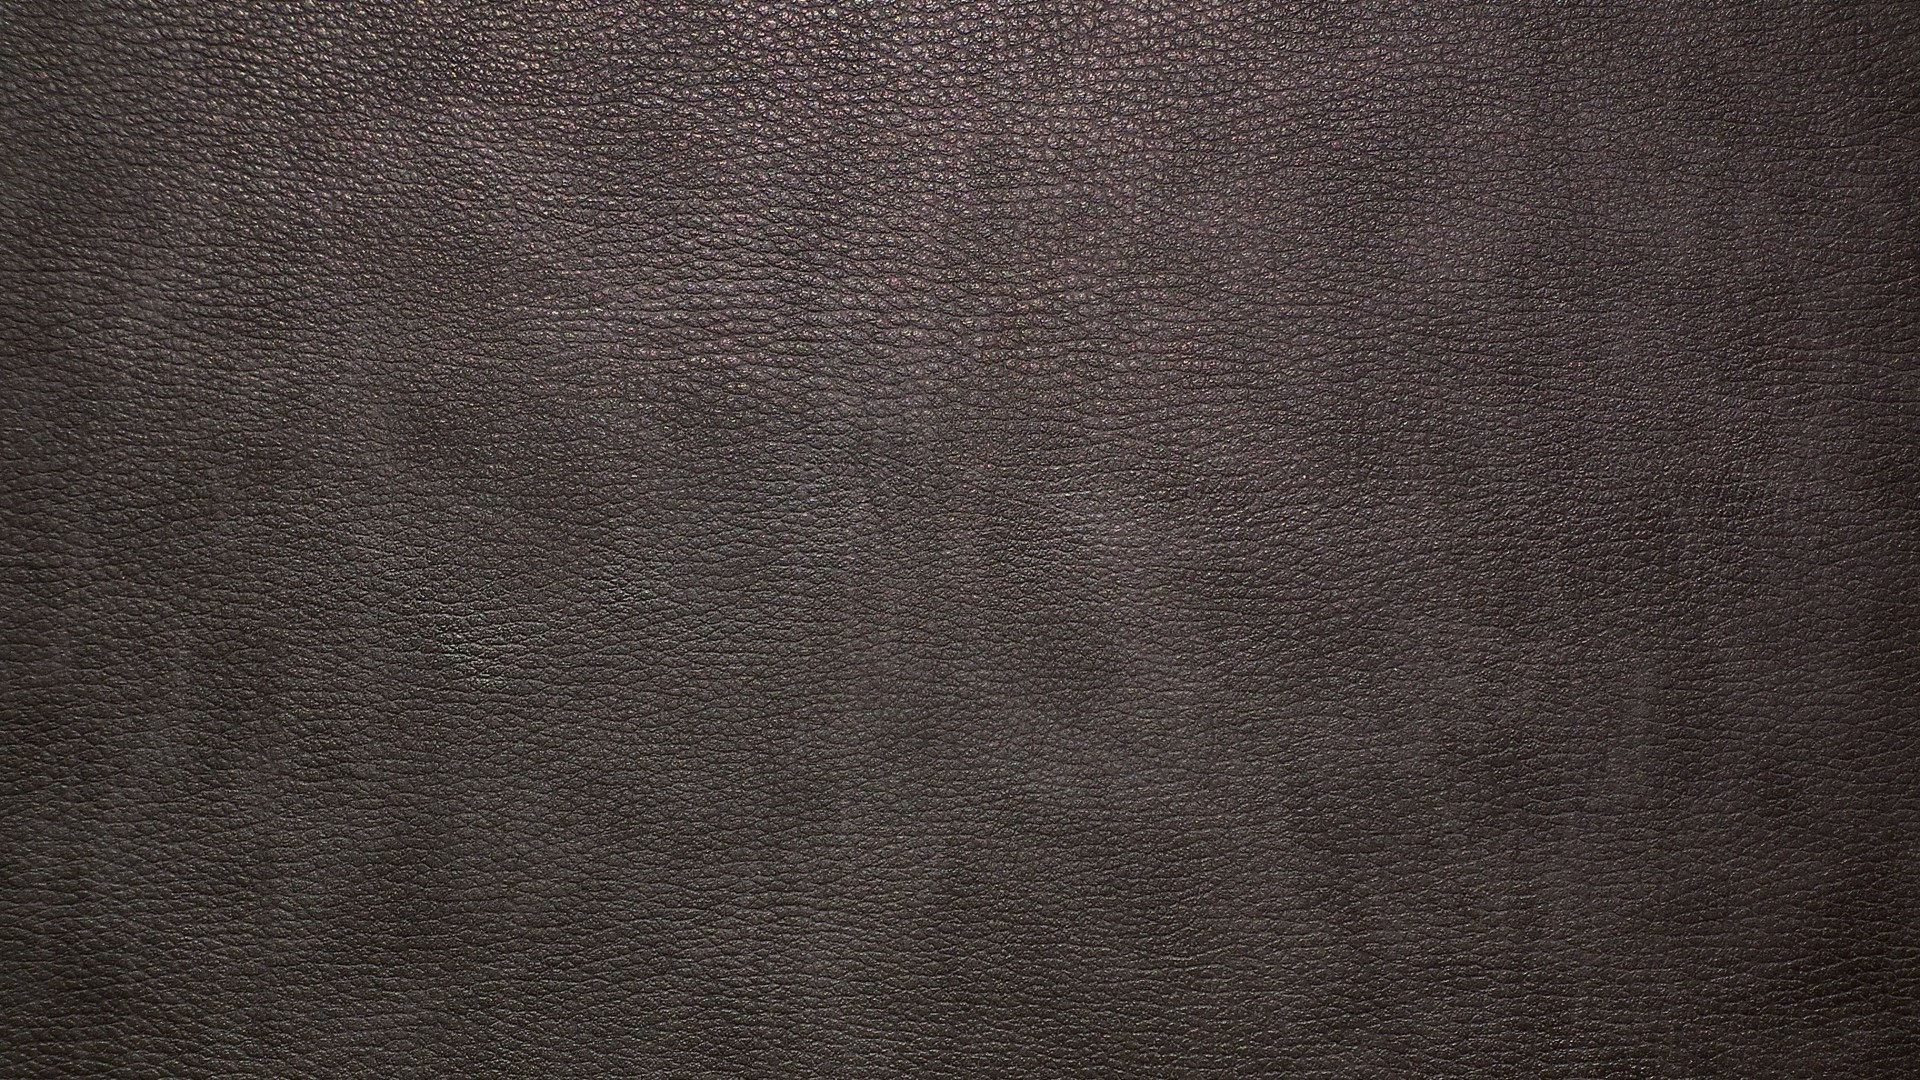 Brown leather wallpapers and images   wallpapers pictures photos 1920x1080